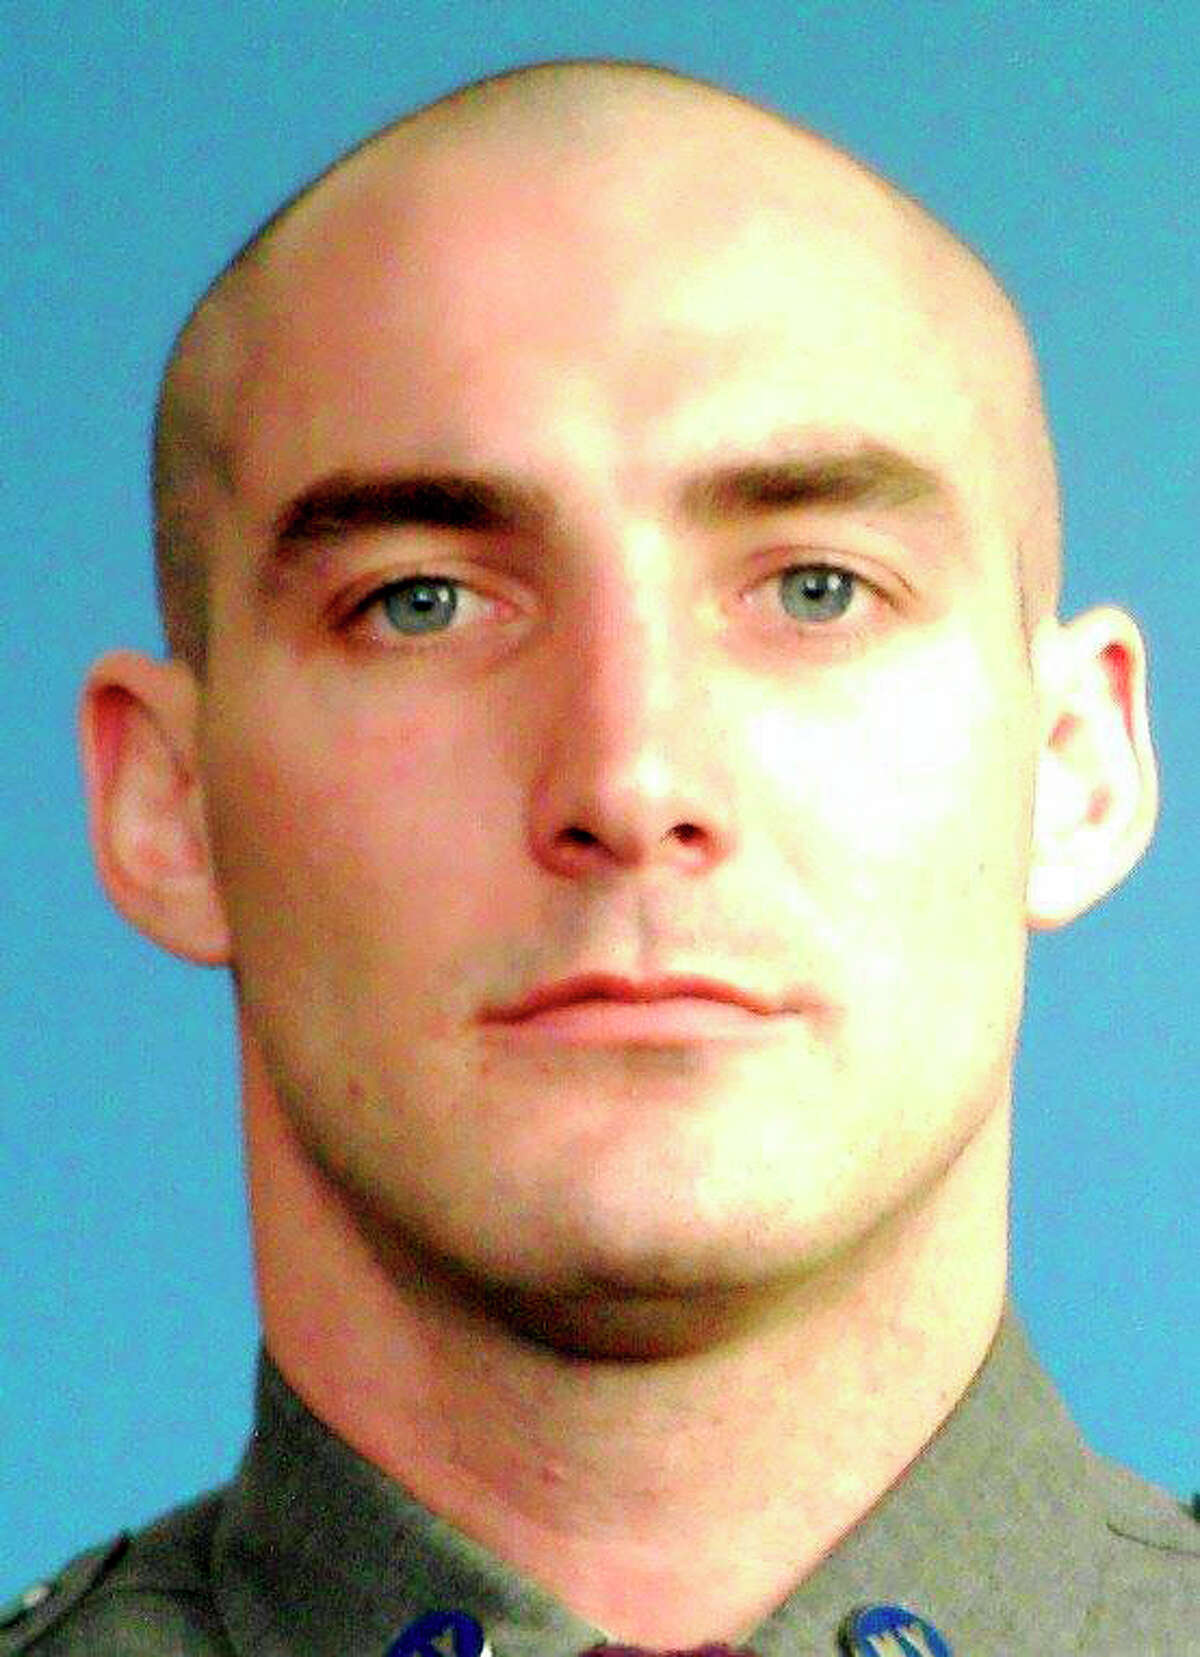 This undated photo provided by the New York State Police shows Trooper Nicholas F. Clark, who was killed on Monday morning, July 2, 2018, while responding to a domestic dispute south of the city of Corning, near the Pennsylvania state line. A procession of dozens of state police cars with lights flashing followed the coroner's vehicle on Route 17 carrying the body of the fallen trooper to Lourdes Hospital in Binghamton. This marks the second time a New York state trooper was killed responding to a domestic call in just under a year. (New York State Police via AP)